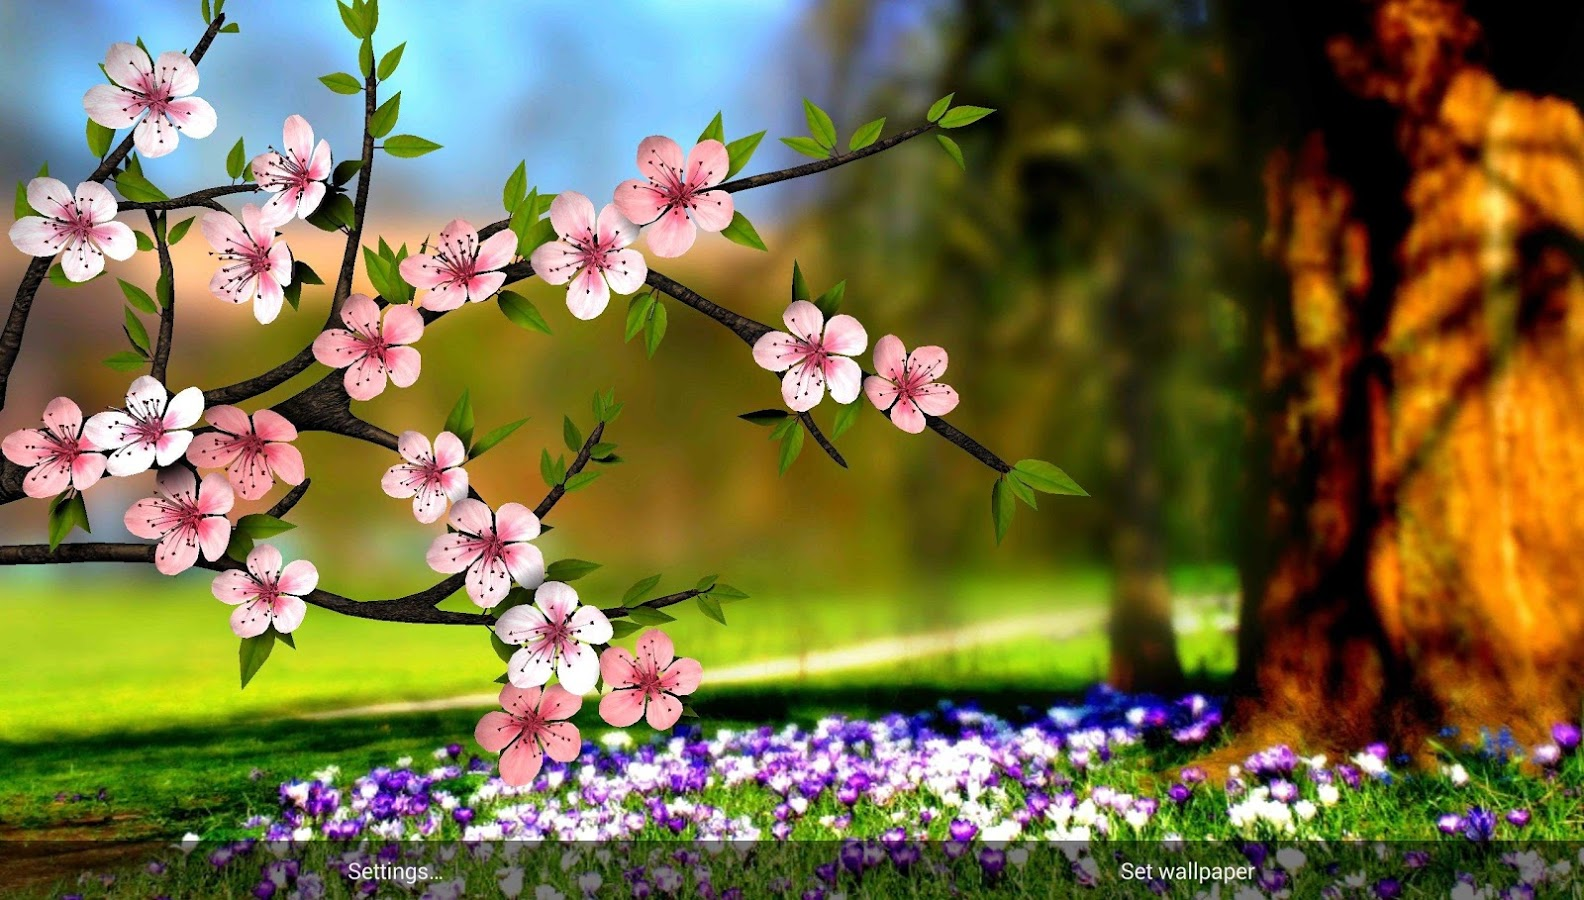 Spring Flowers 3d Parallax Hd App Ranking And Store Data App Annie